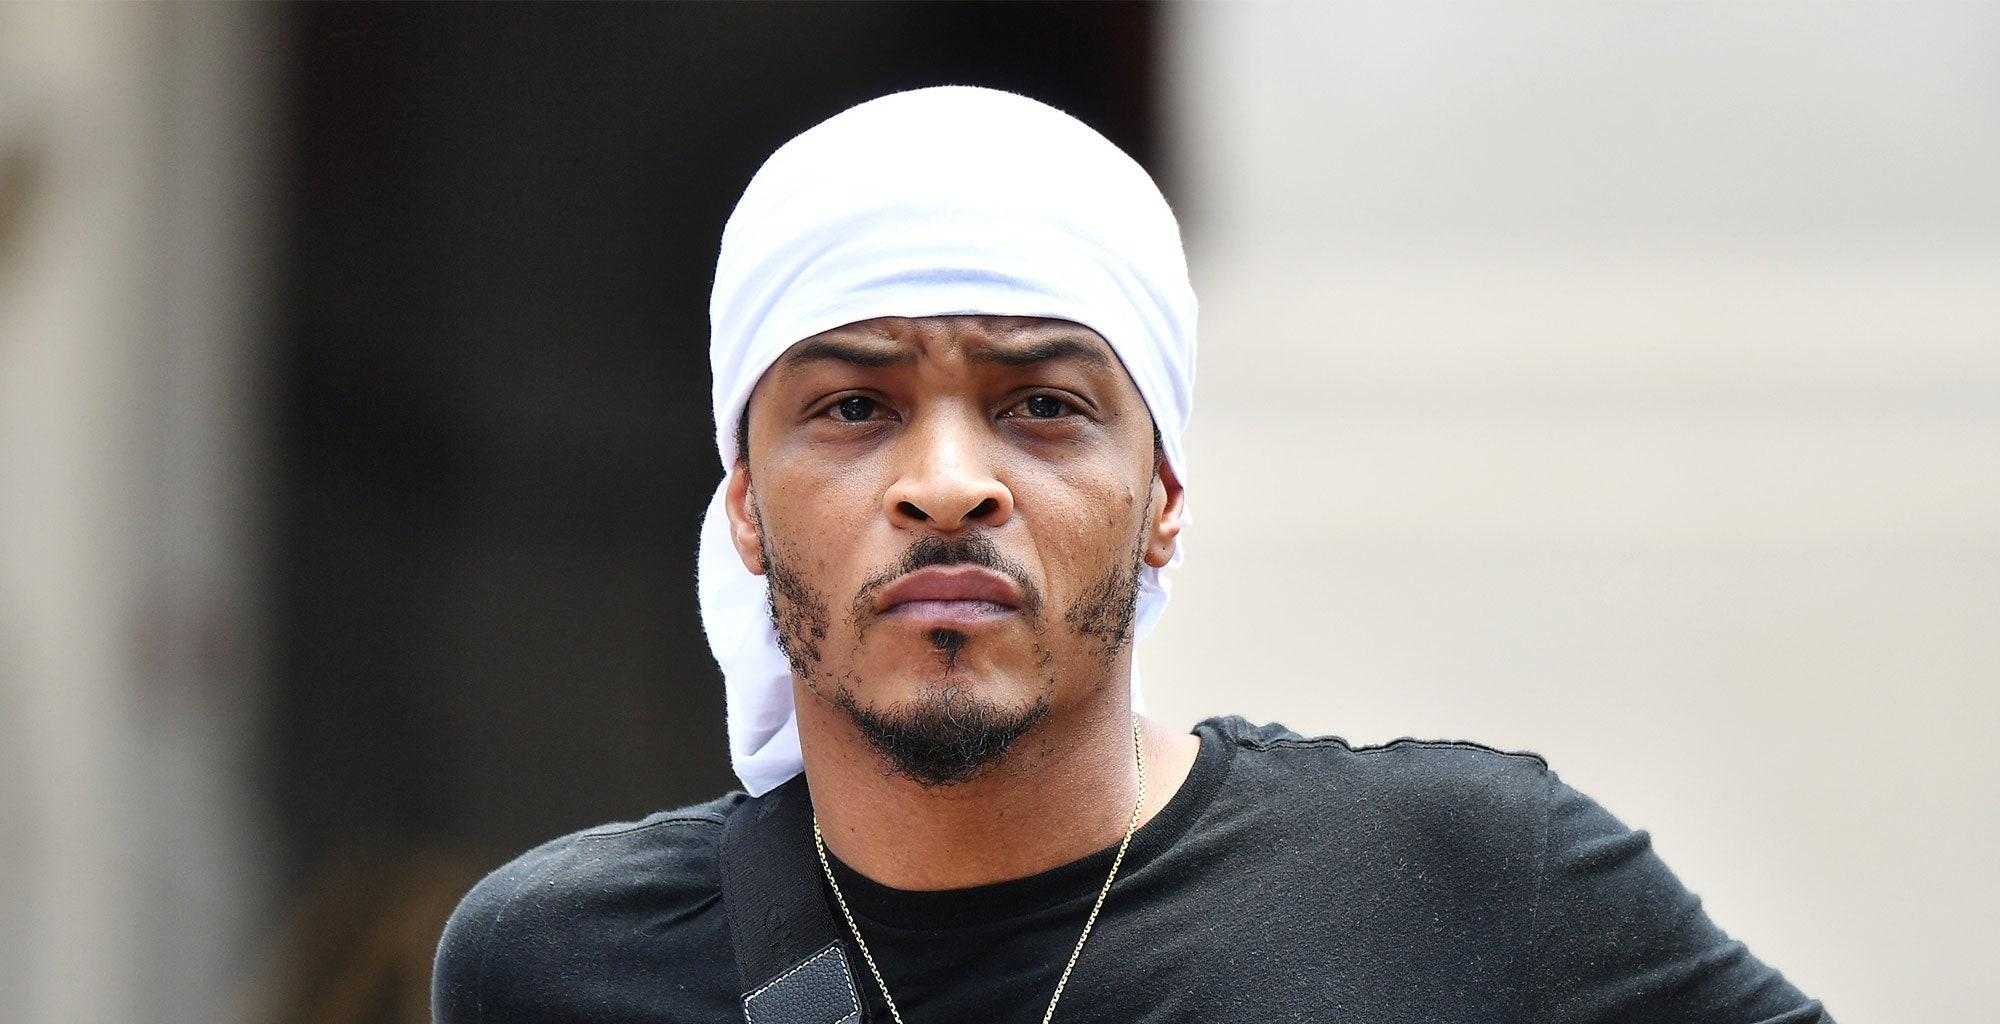 T.I. Wants Lawsuit Against Him To Be Thrown Out - Details!